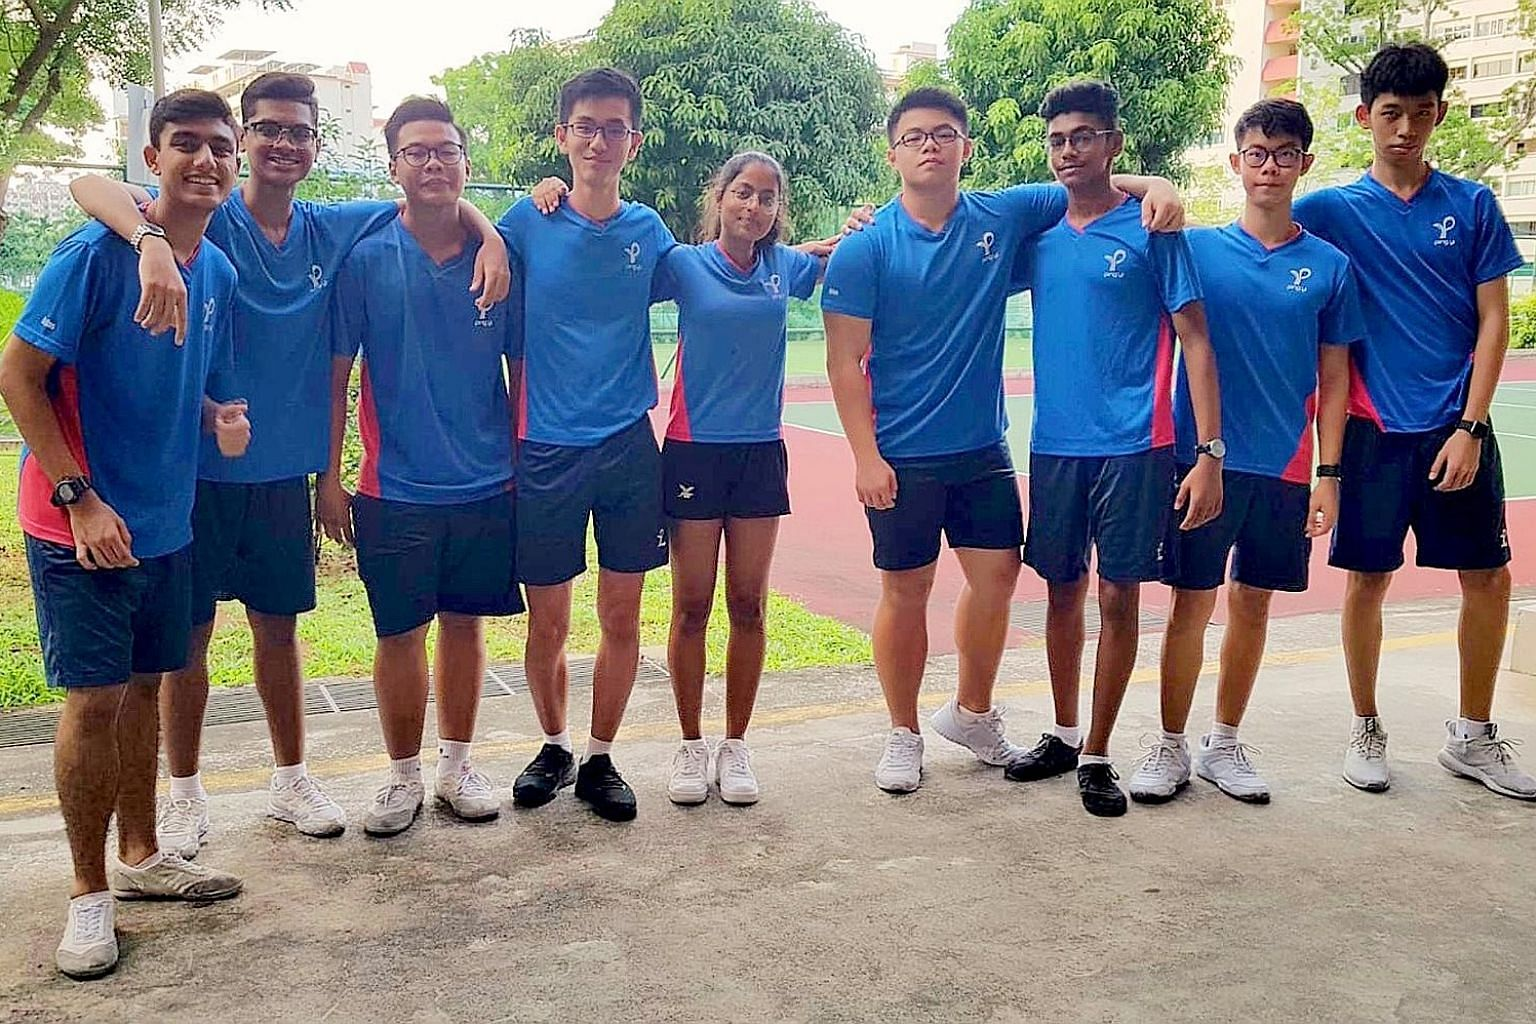 Ping Yi Secondary School are the first team to sign up for the ST Run's SPH35 Panasonic Schools Challenge. The Schools Challenge is a new addition to the annual ST Run, held at the Singapore Sports Hub on Sept 29.